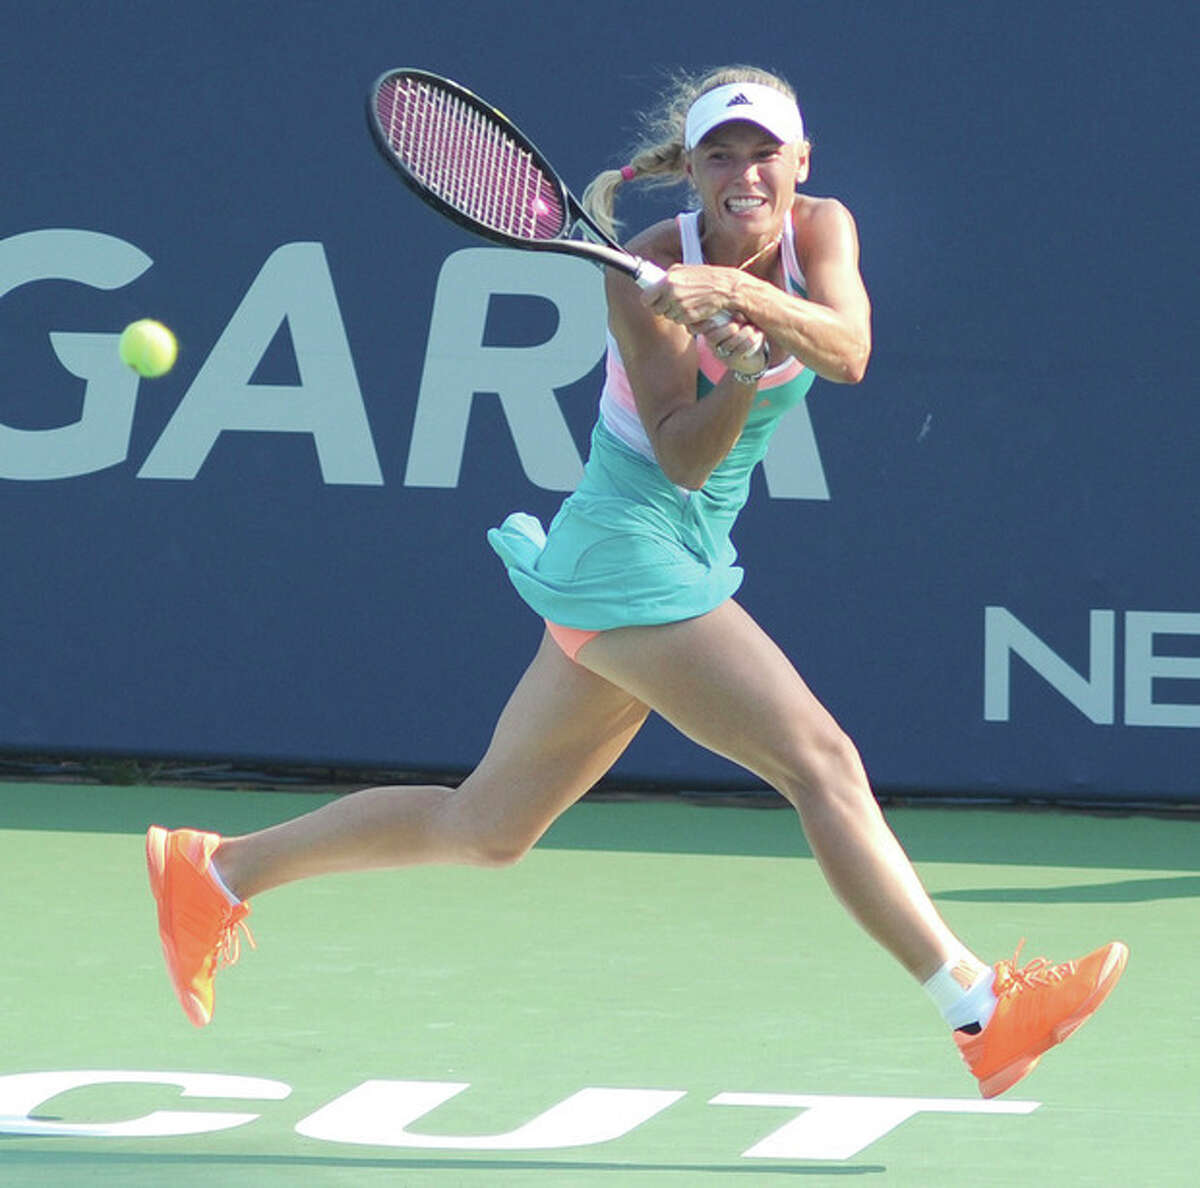 Hour photo/John Nash Caroline Wozniacki hits a return while on the run during her second round match against Karin Knapp Wednesday at the New Haven Open at Yale. Wozniacki won, 6-1, 7-5.